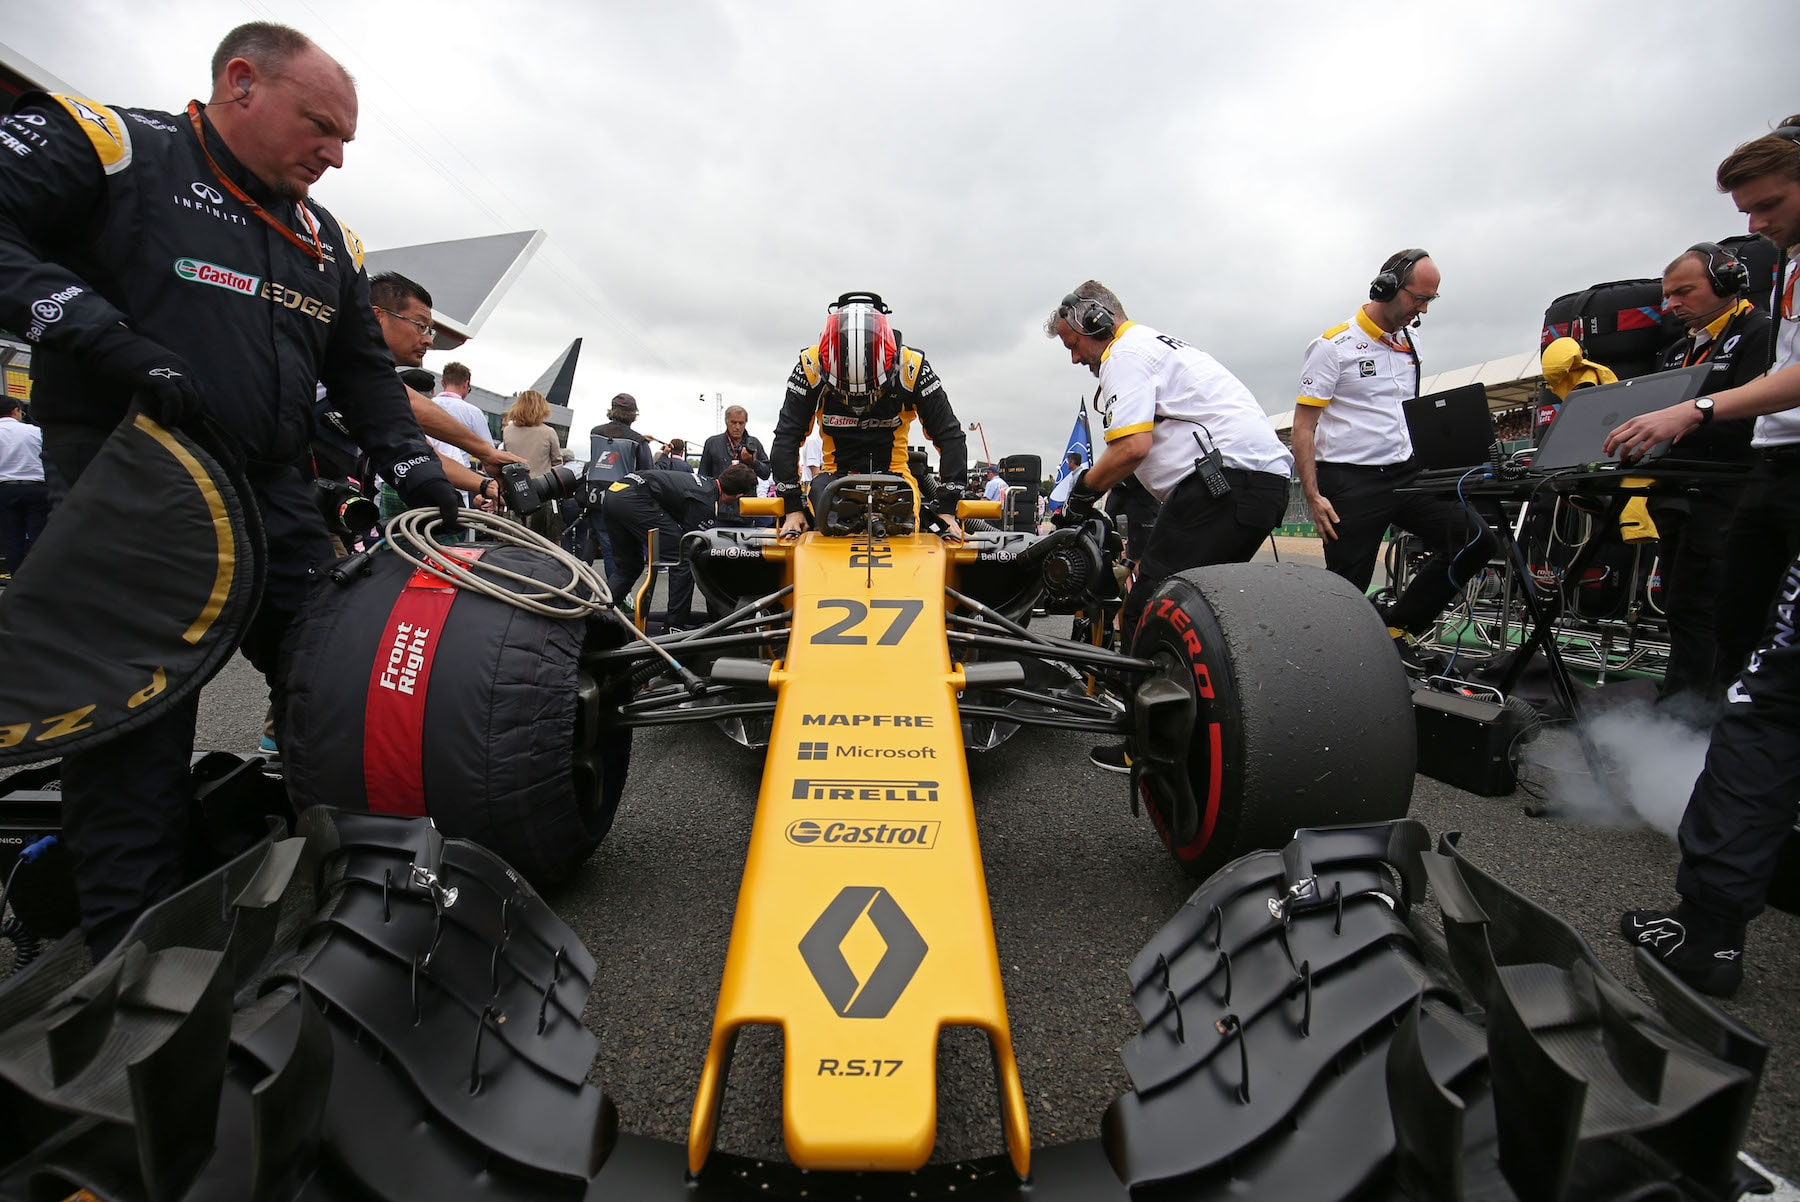 B 2017 Nico Hulkenberg | Renault RS16 | 2017 British GP 2 copy.jpg